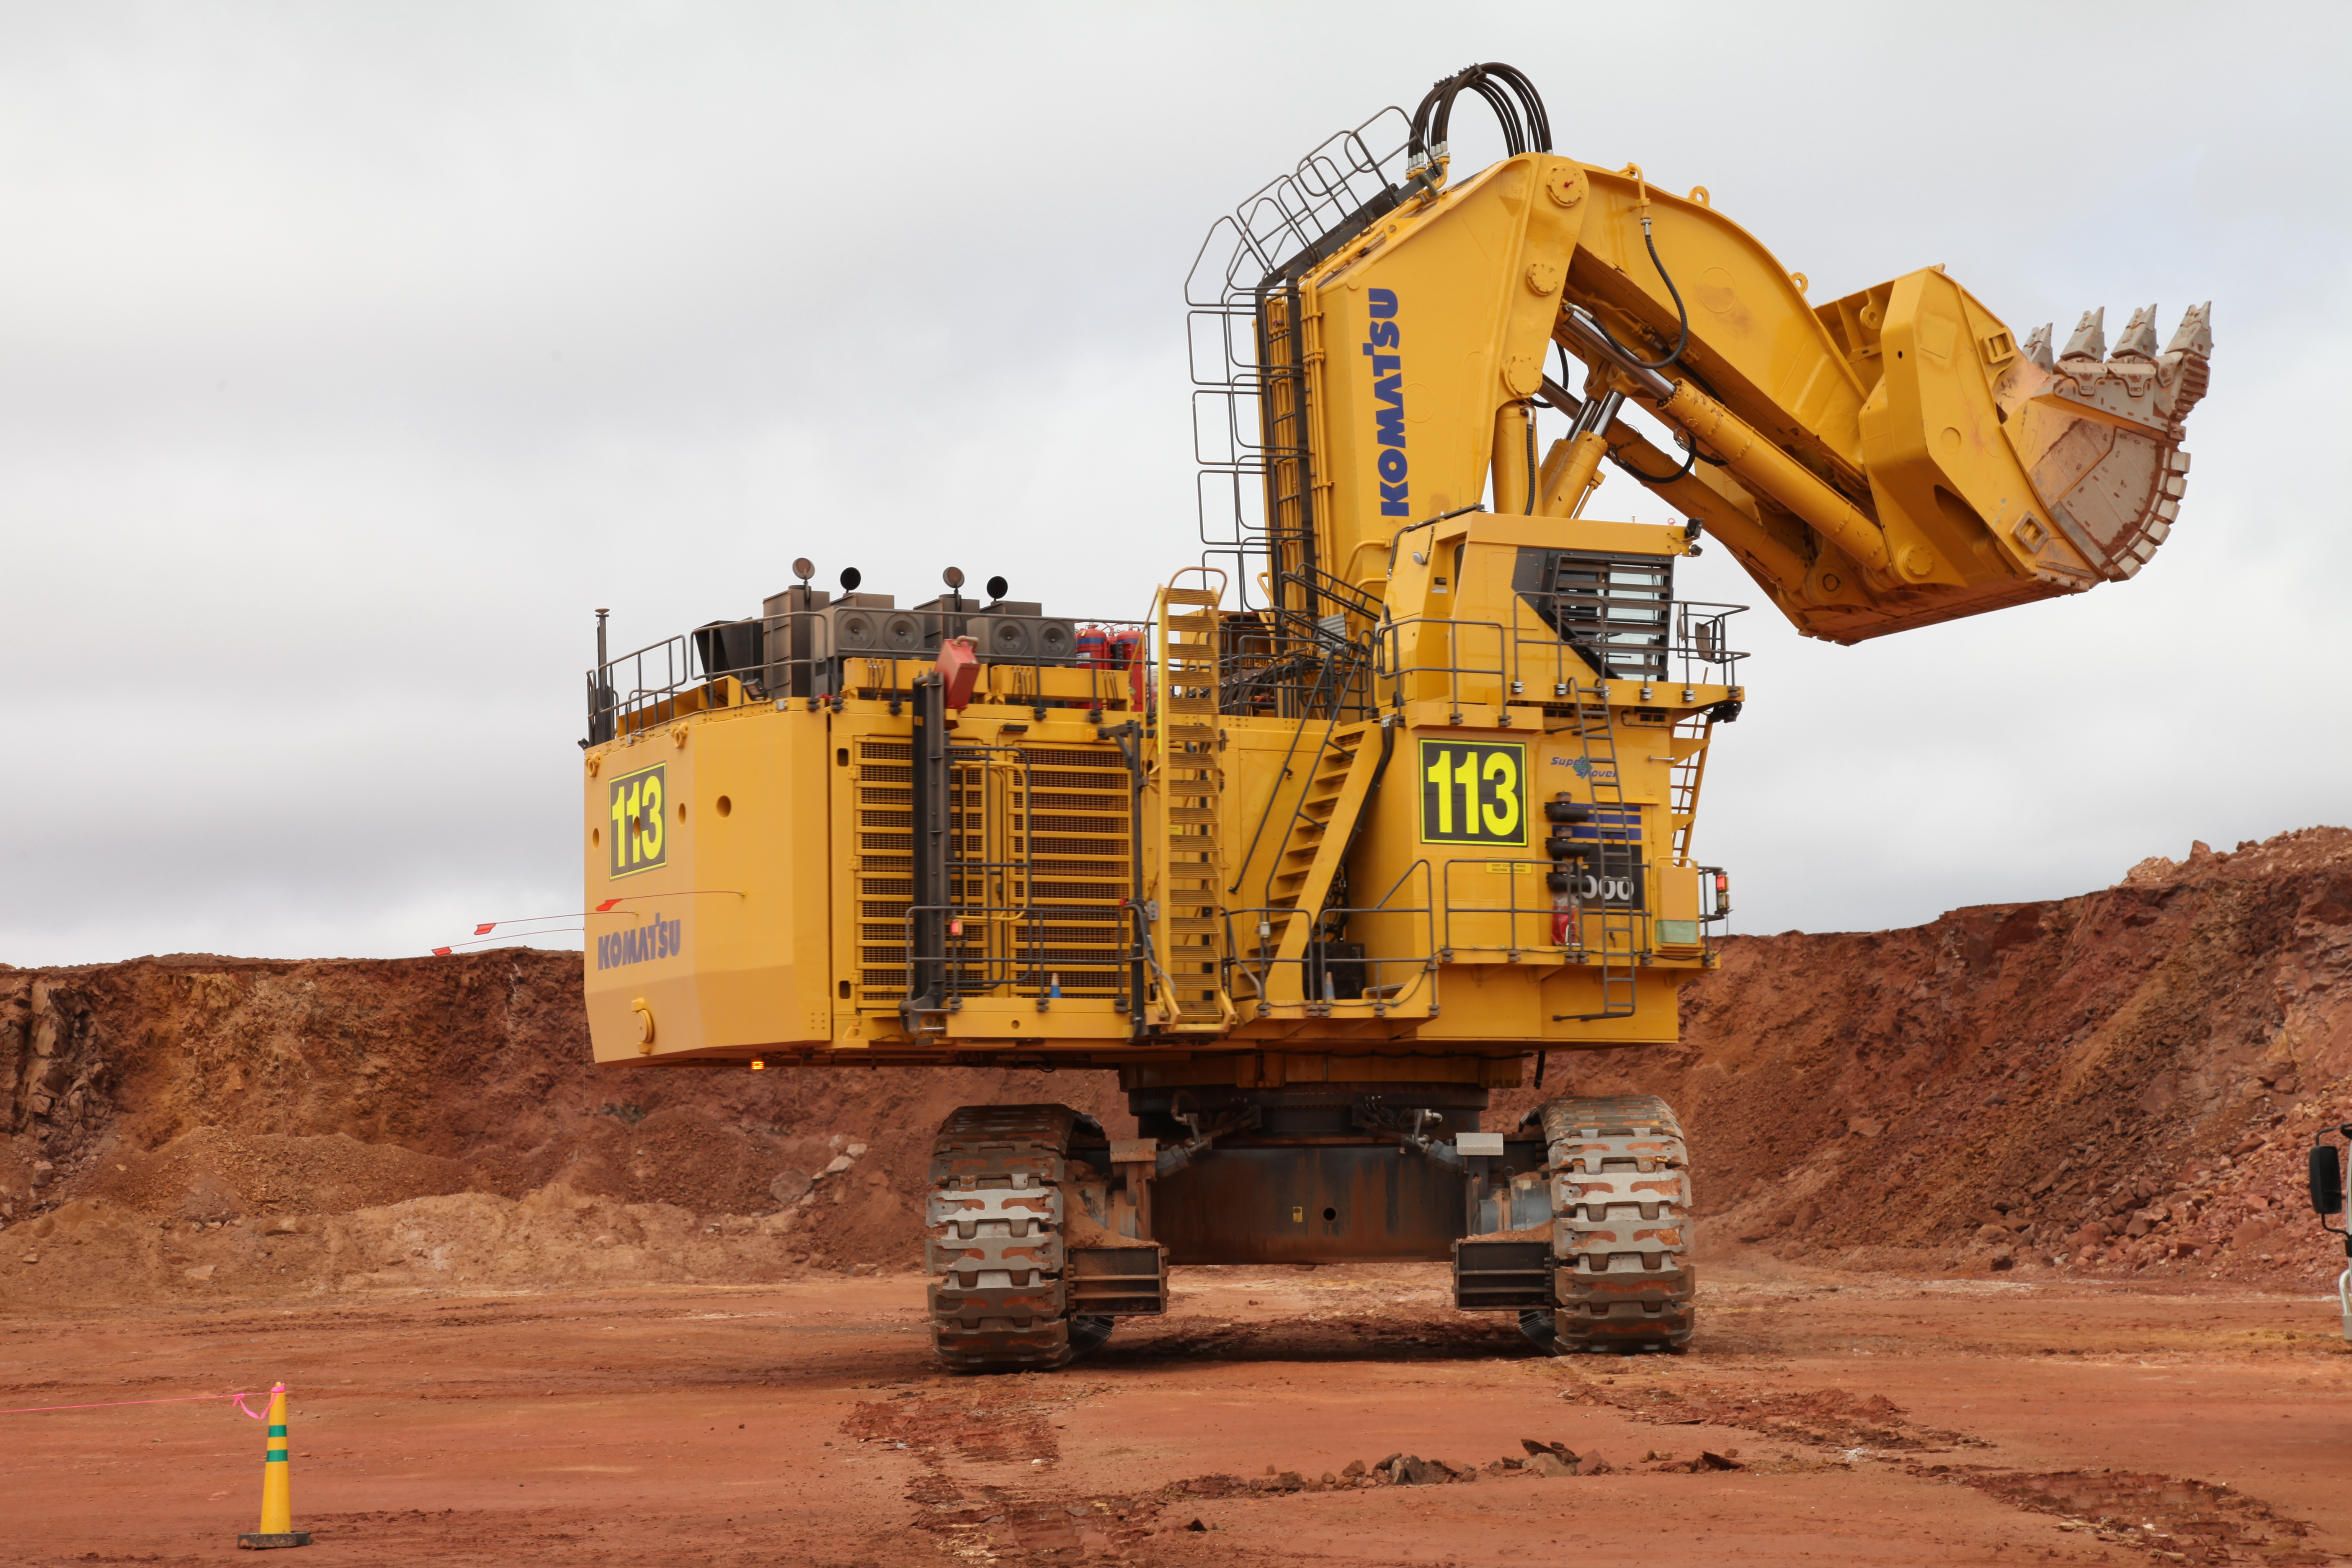 Superstars In The Super Pit besides Four Problems Crisp Dm Fix additionally Normet Offers New Generation Mining Equipment in addition 1331 together with Item. on machine cycle time